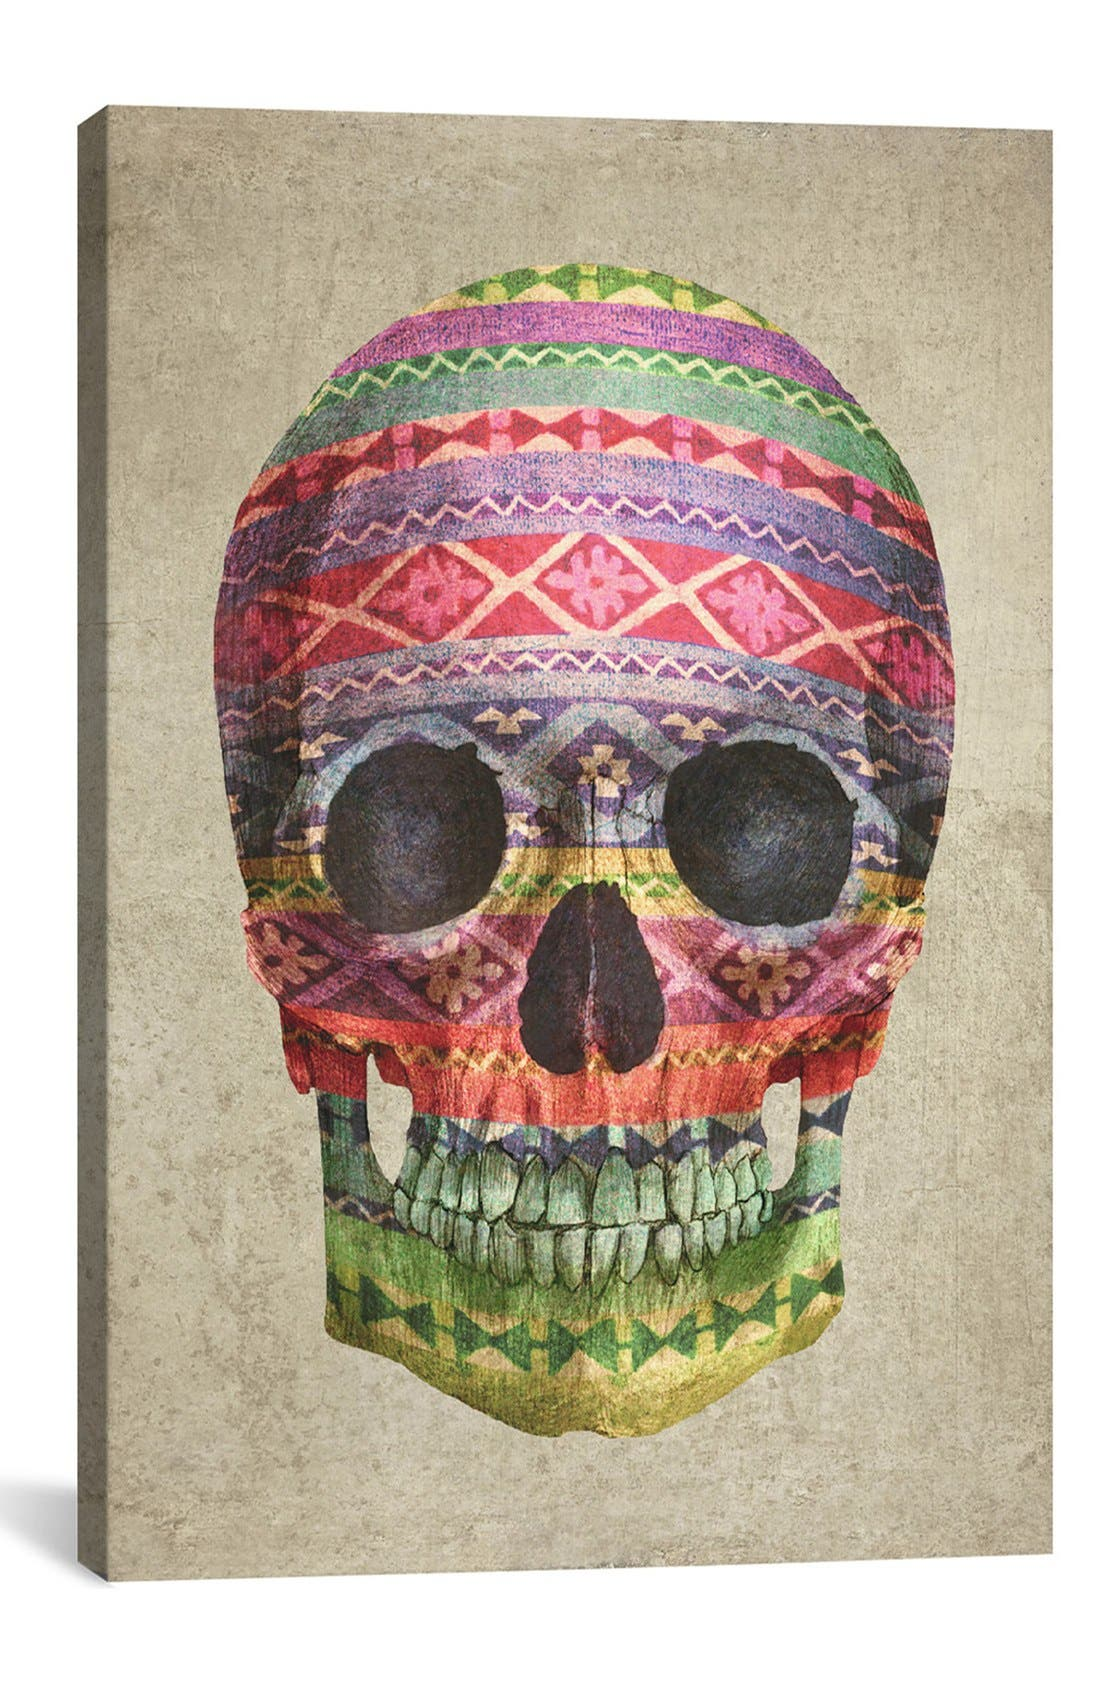 Alternate Image 1 Selected - iCanvas 'Skull - Terry Fan' Giclée Print Canvas Art